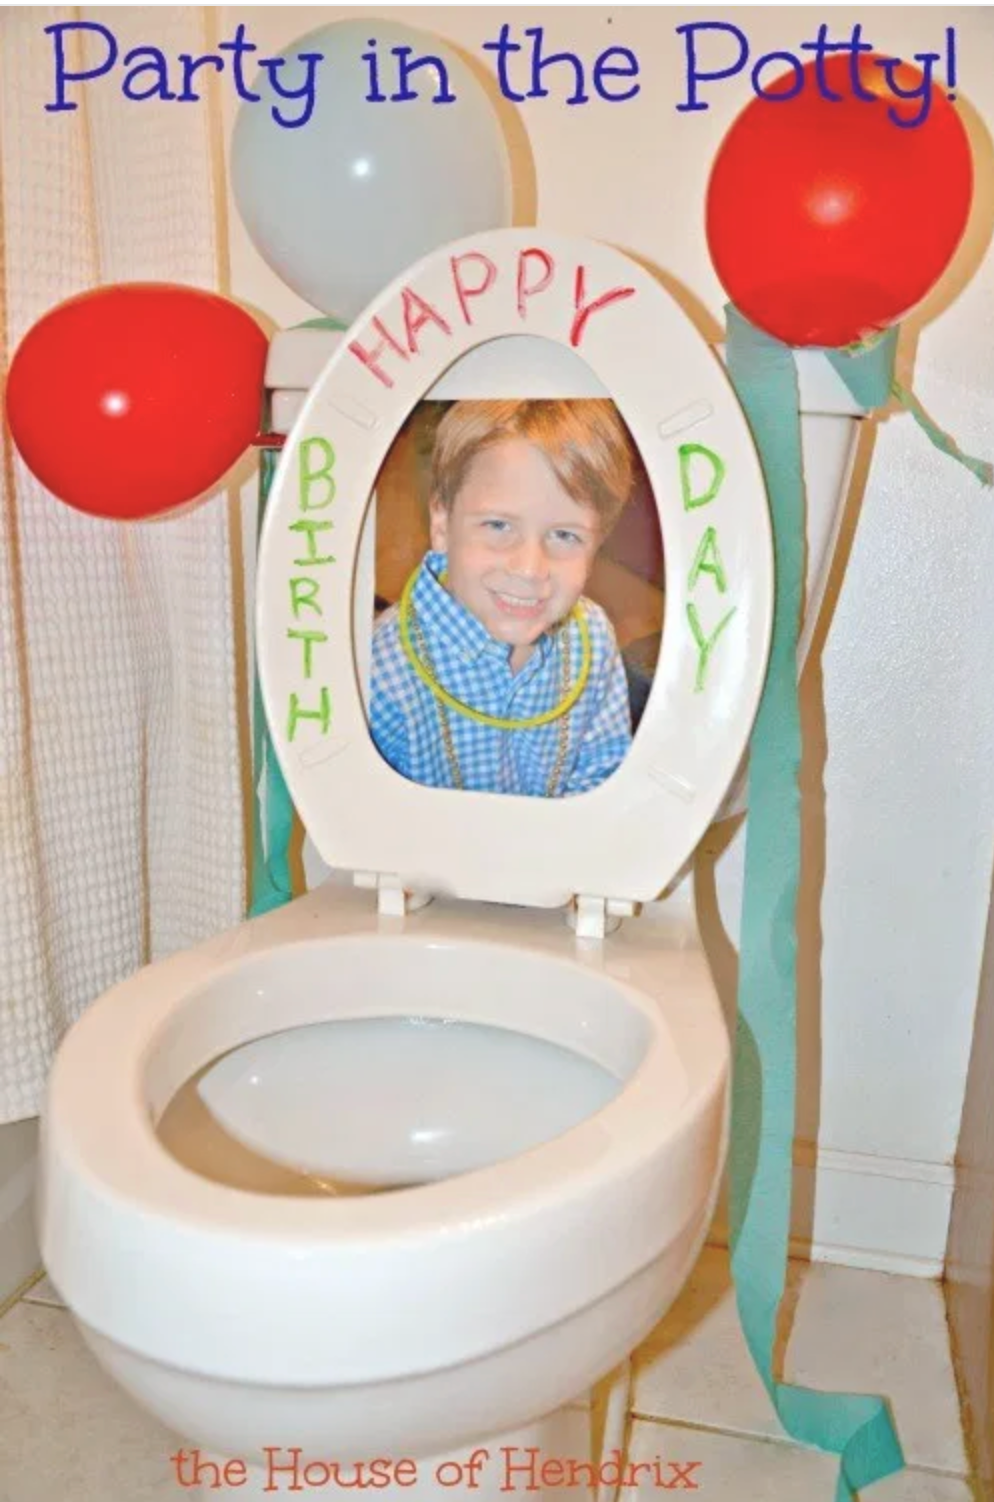 Party in the Potty Birthday Sign